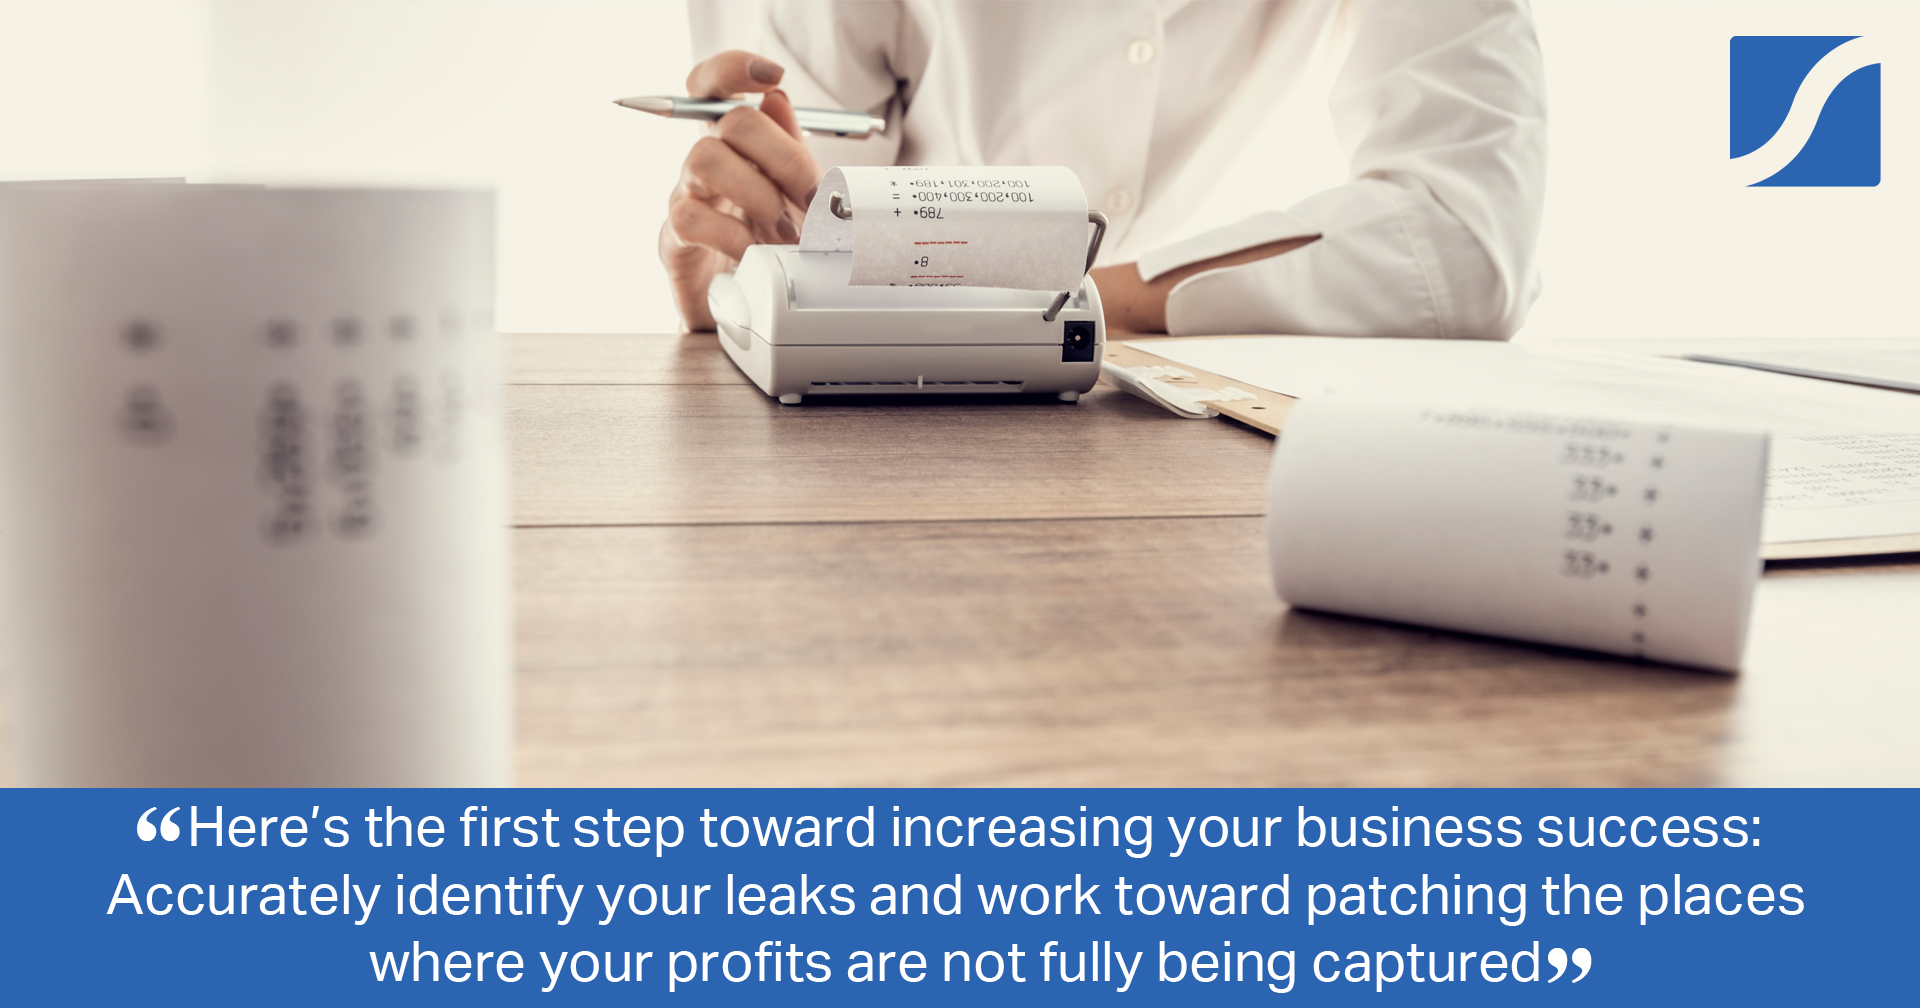 You Are Causing Your Business to Leak Growth and Profits!